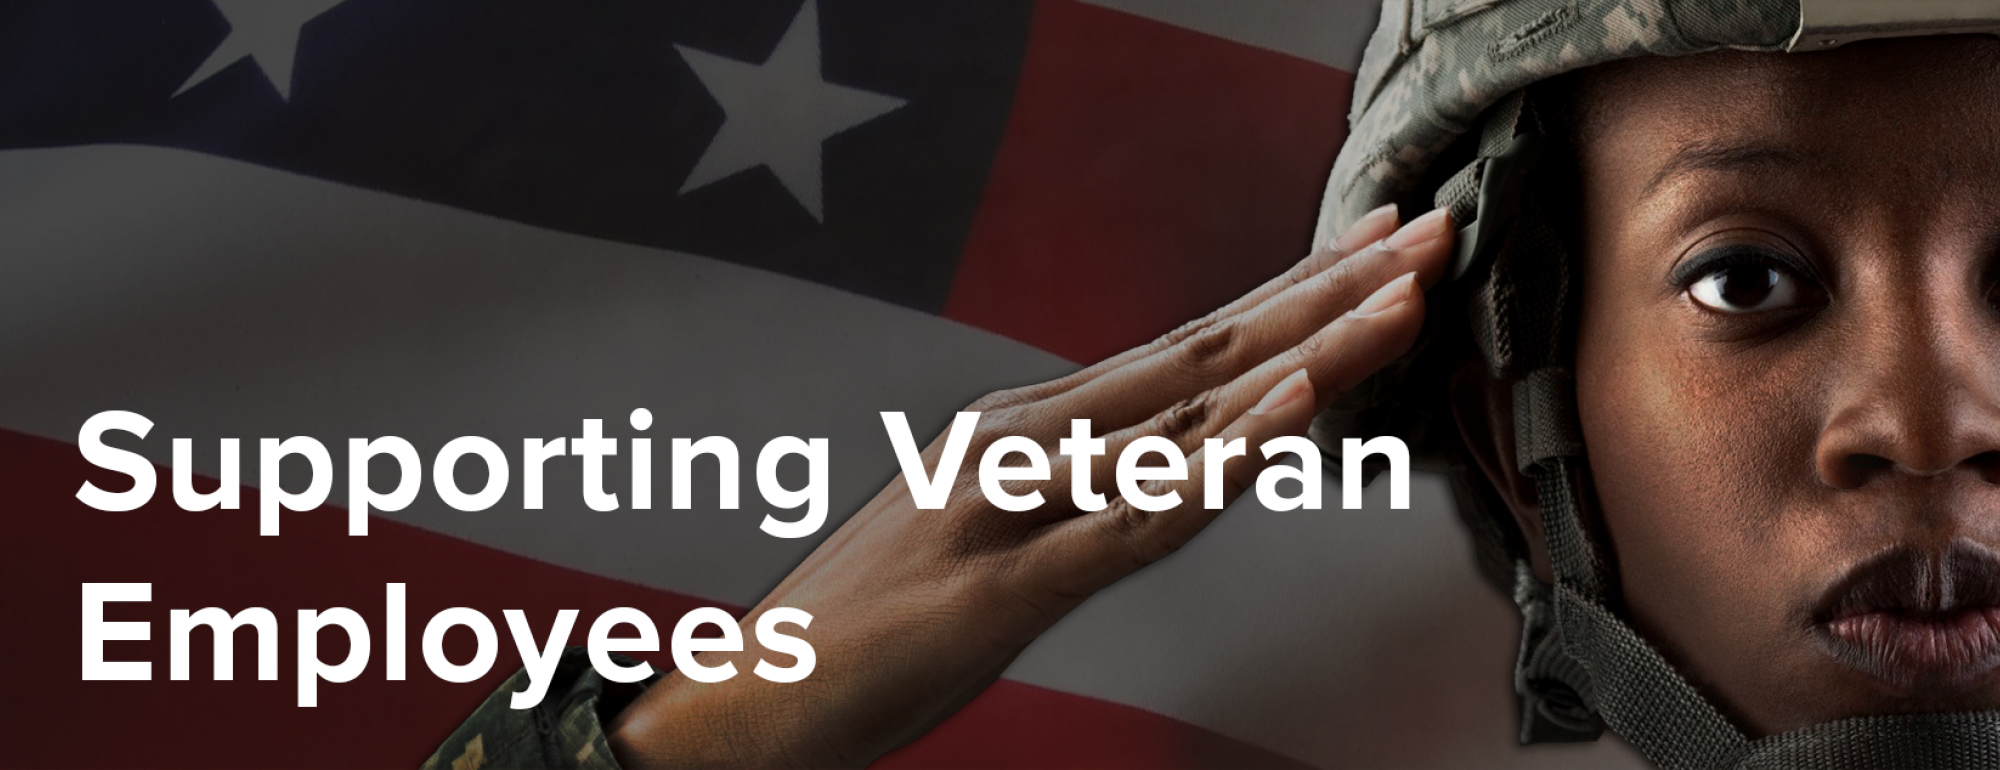 supporting veteran employees